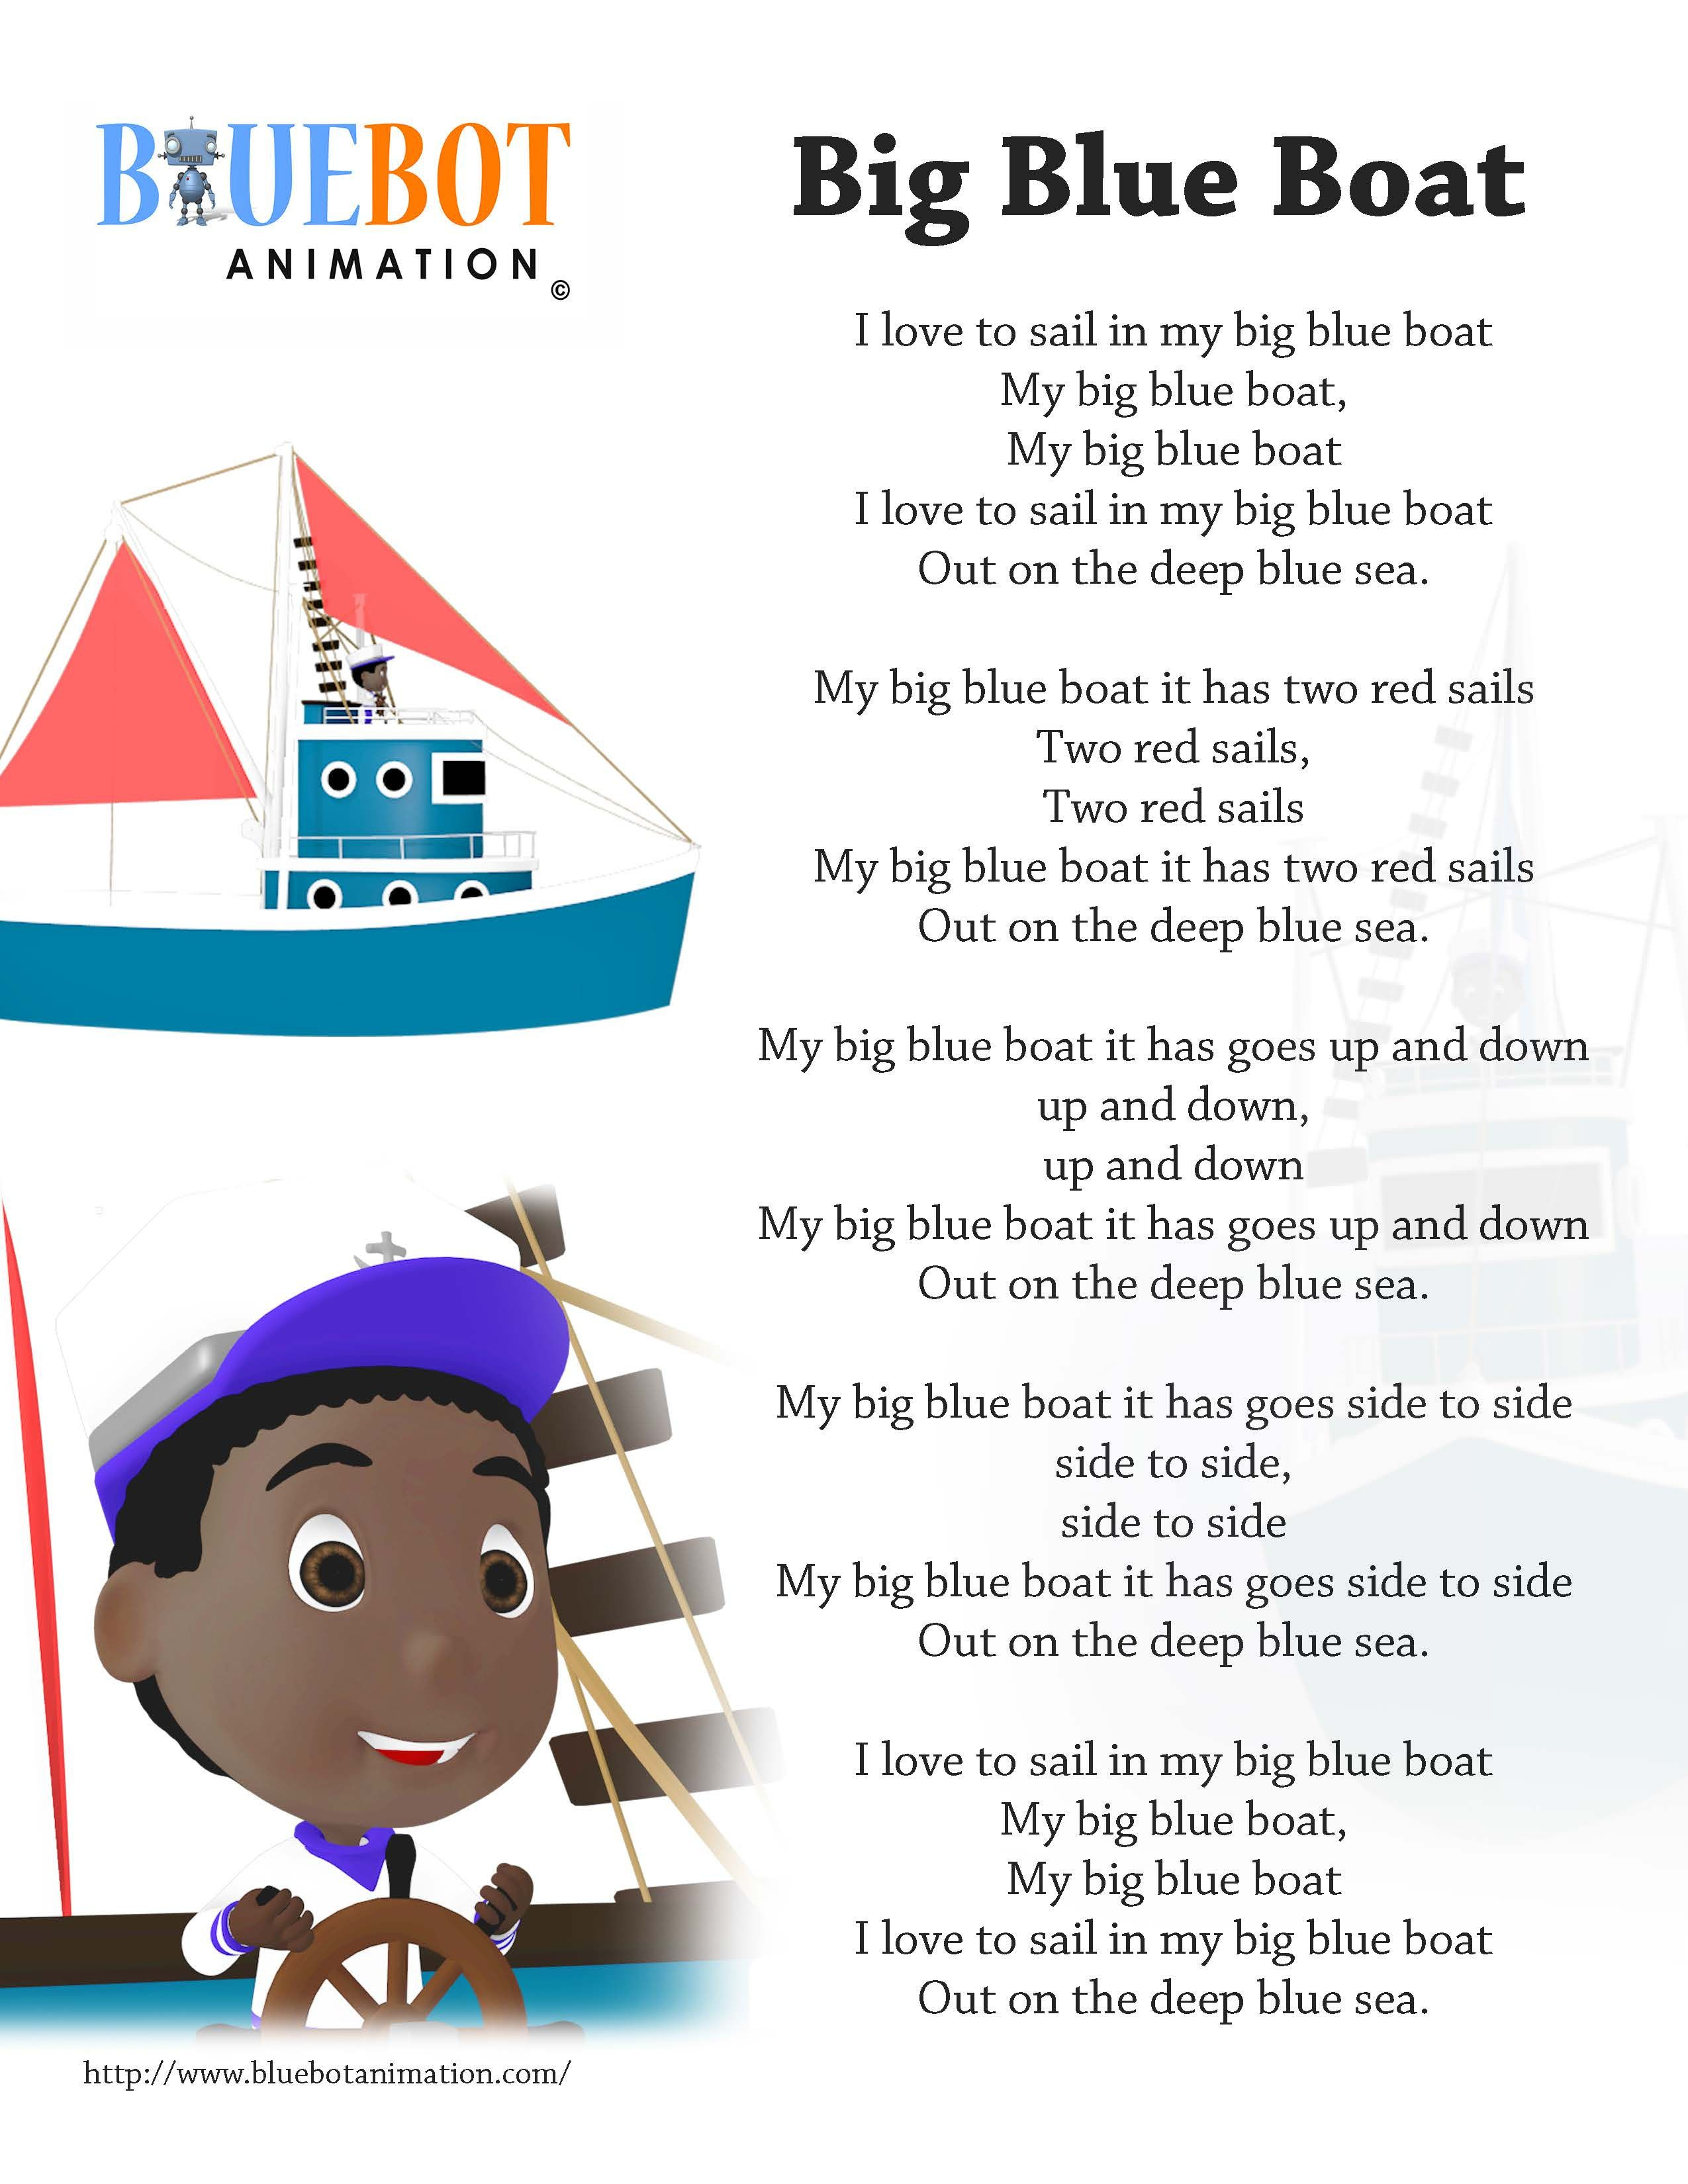 Big Blue Boat Nursery Rhyme Lyrics Free Printable Nursery Rhyme - Free Printable Nursery Rhymes Songs